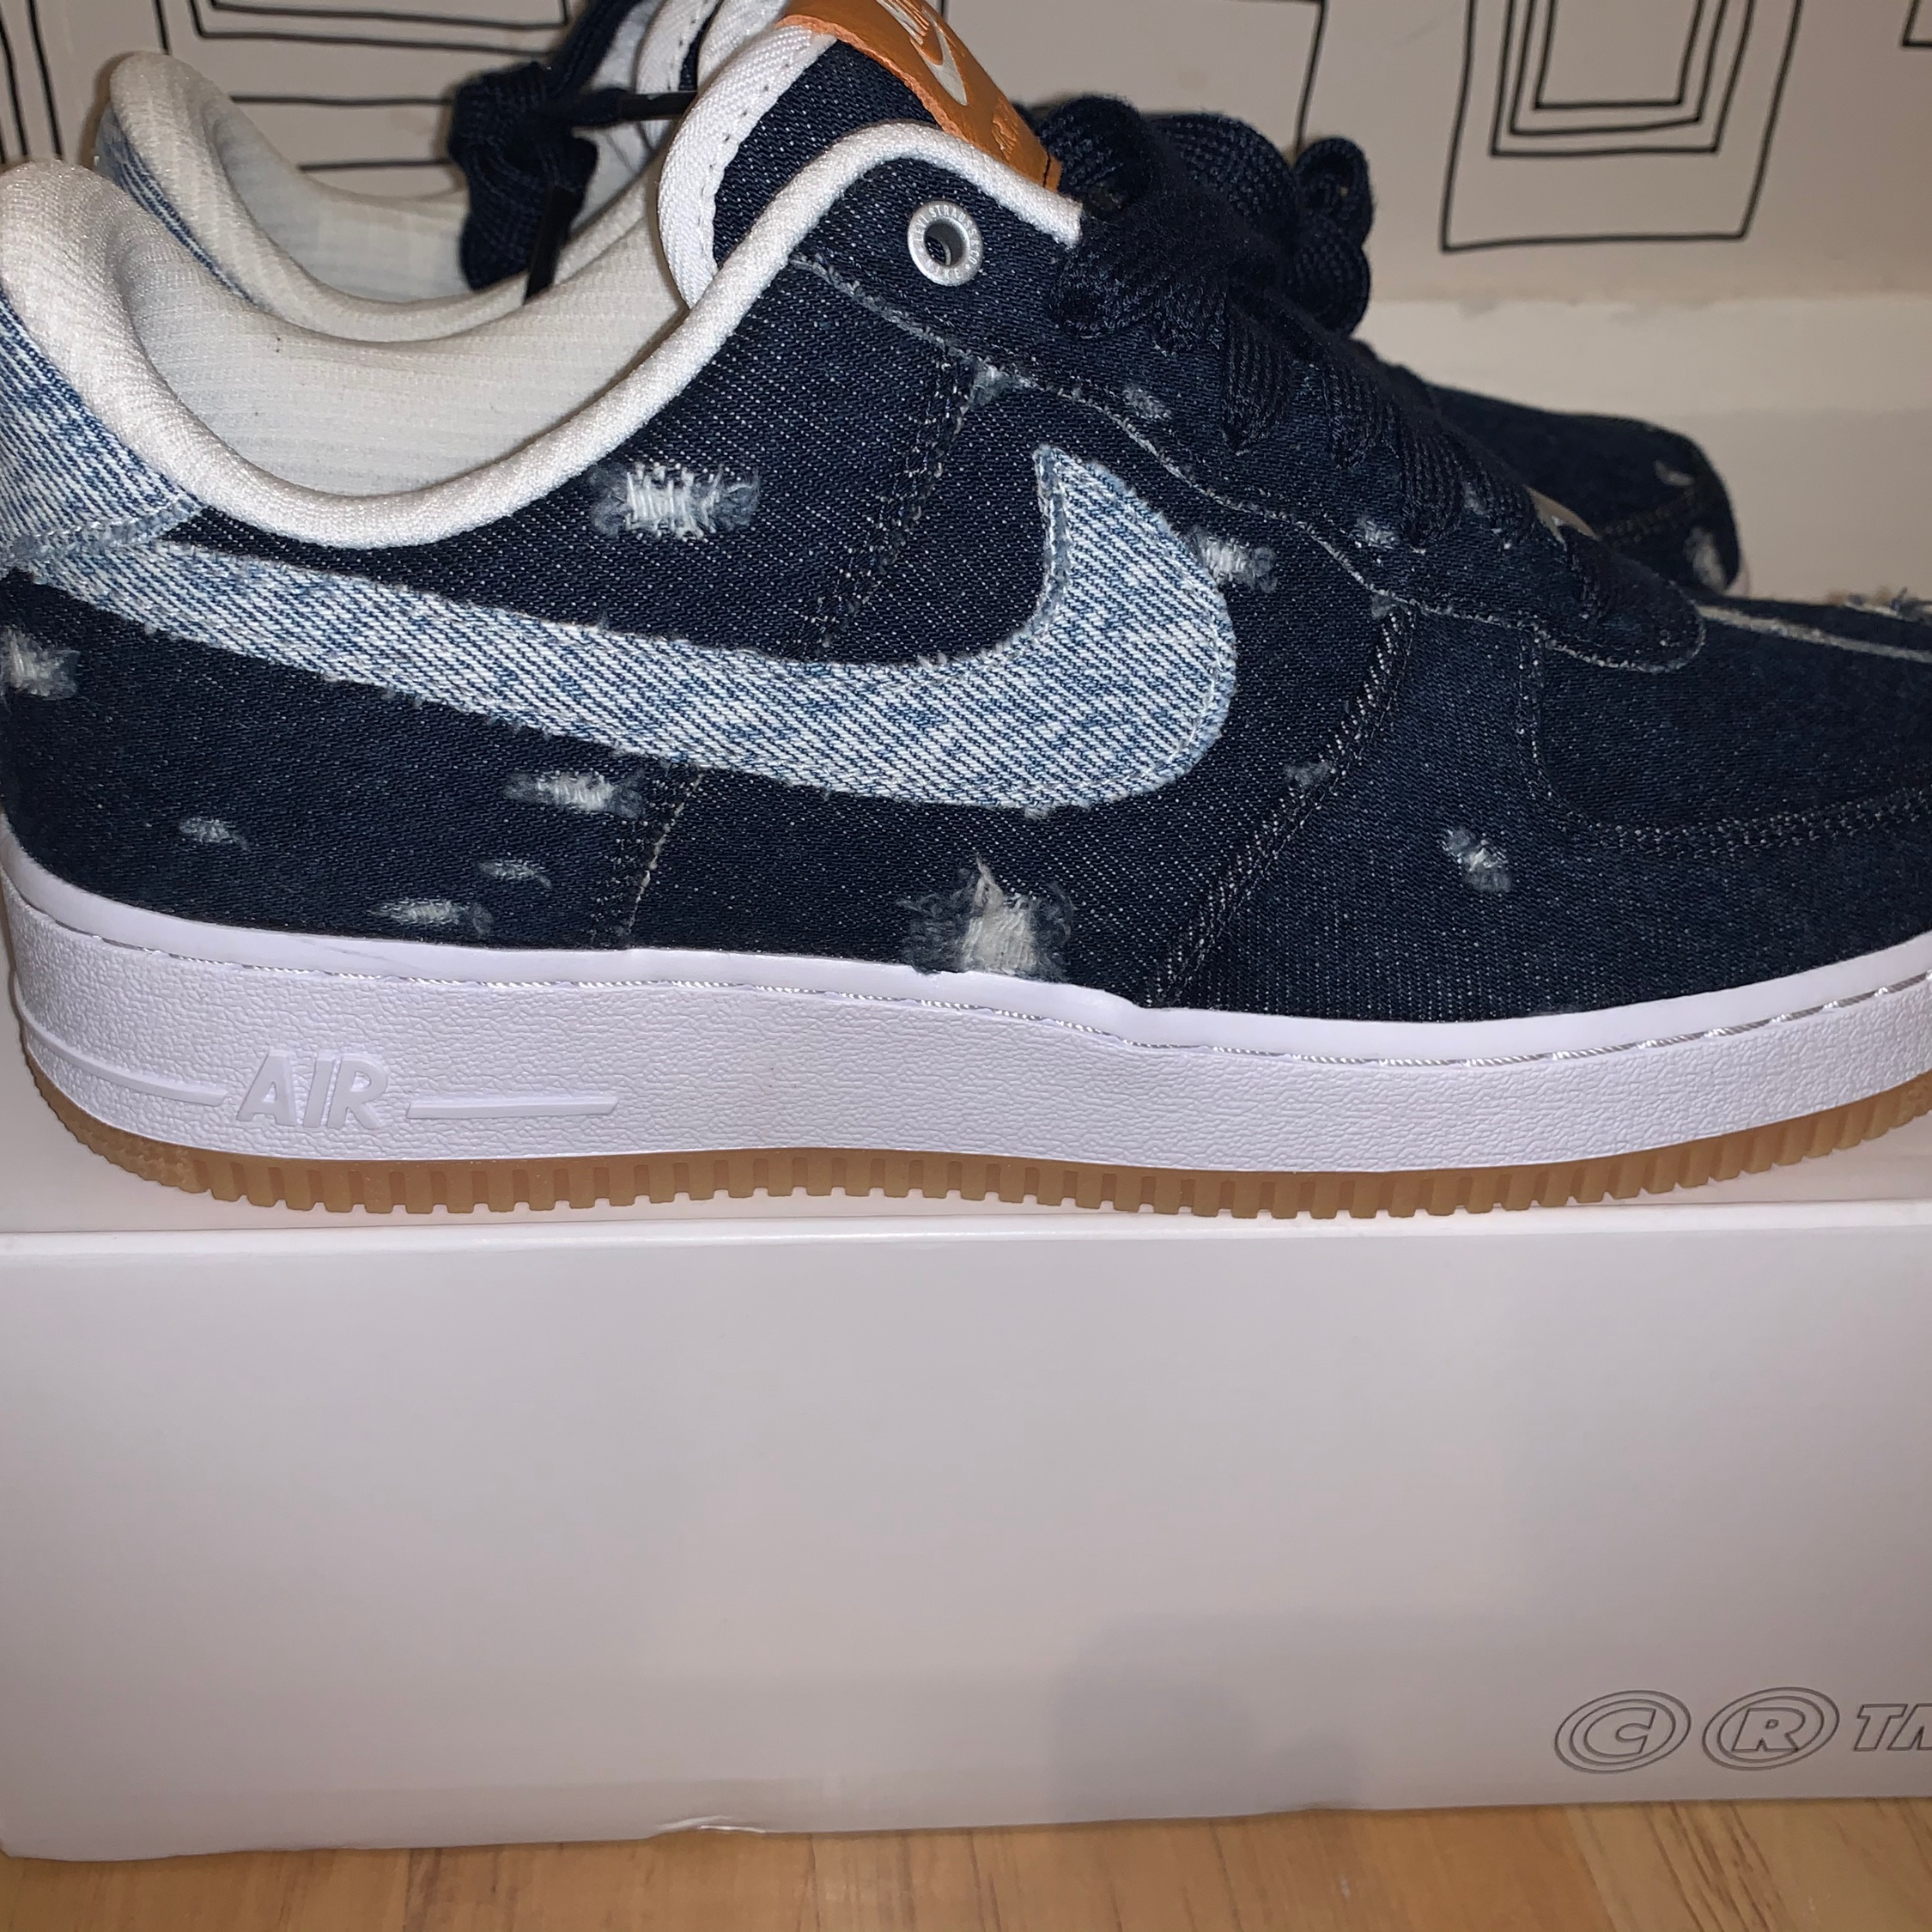 Air Force 1 X Levis Customs